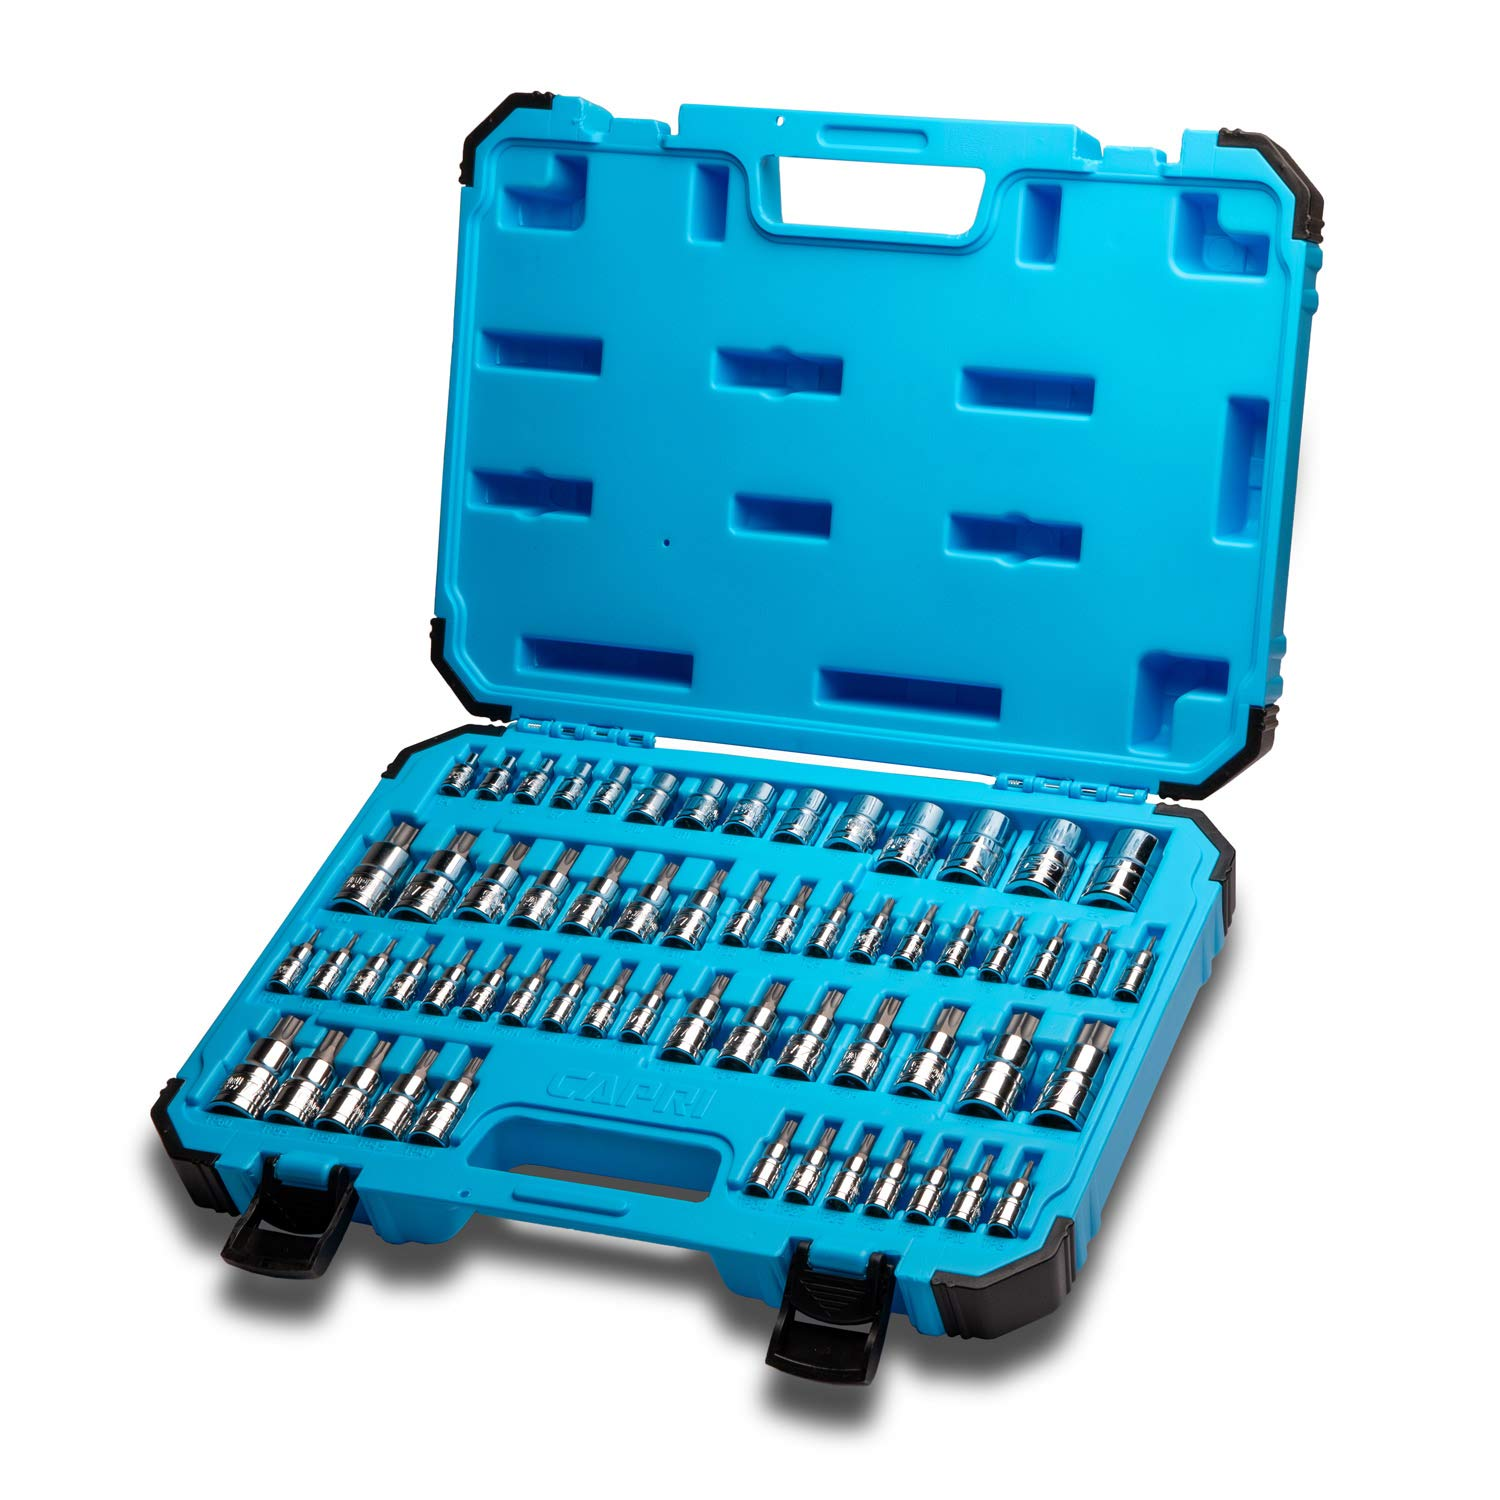 Capri Tools Master Star Bit Socket Set, Advanced Series, 60-Piece by Capri Tools